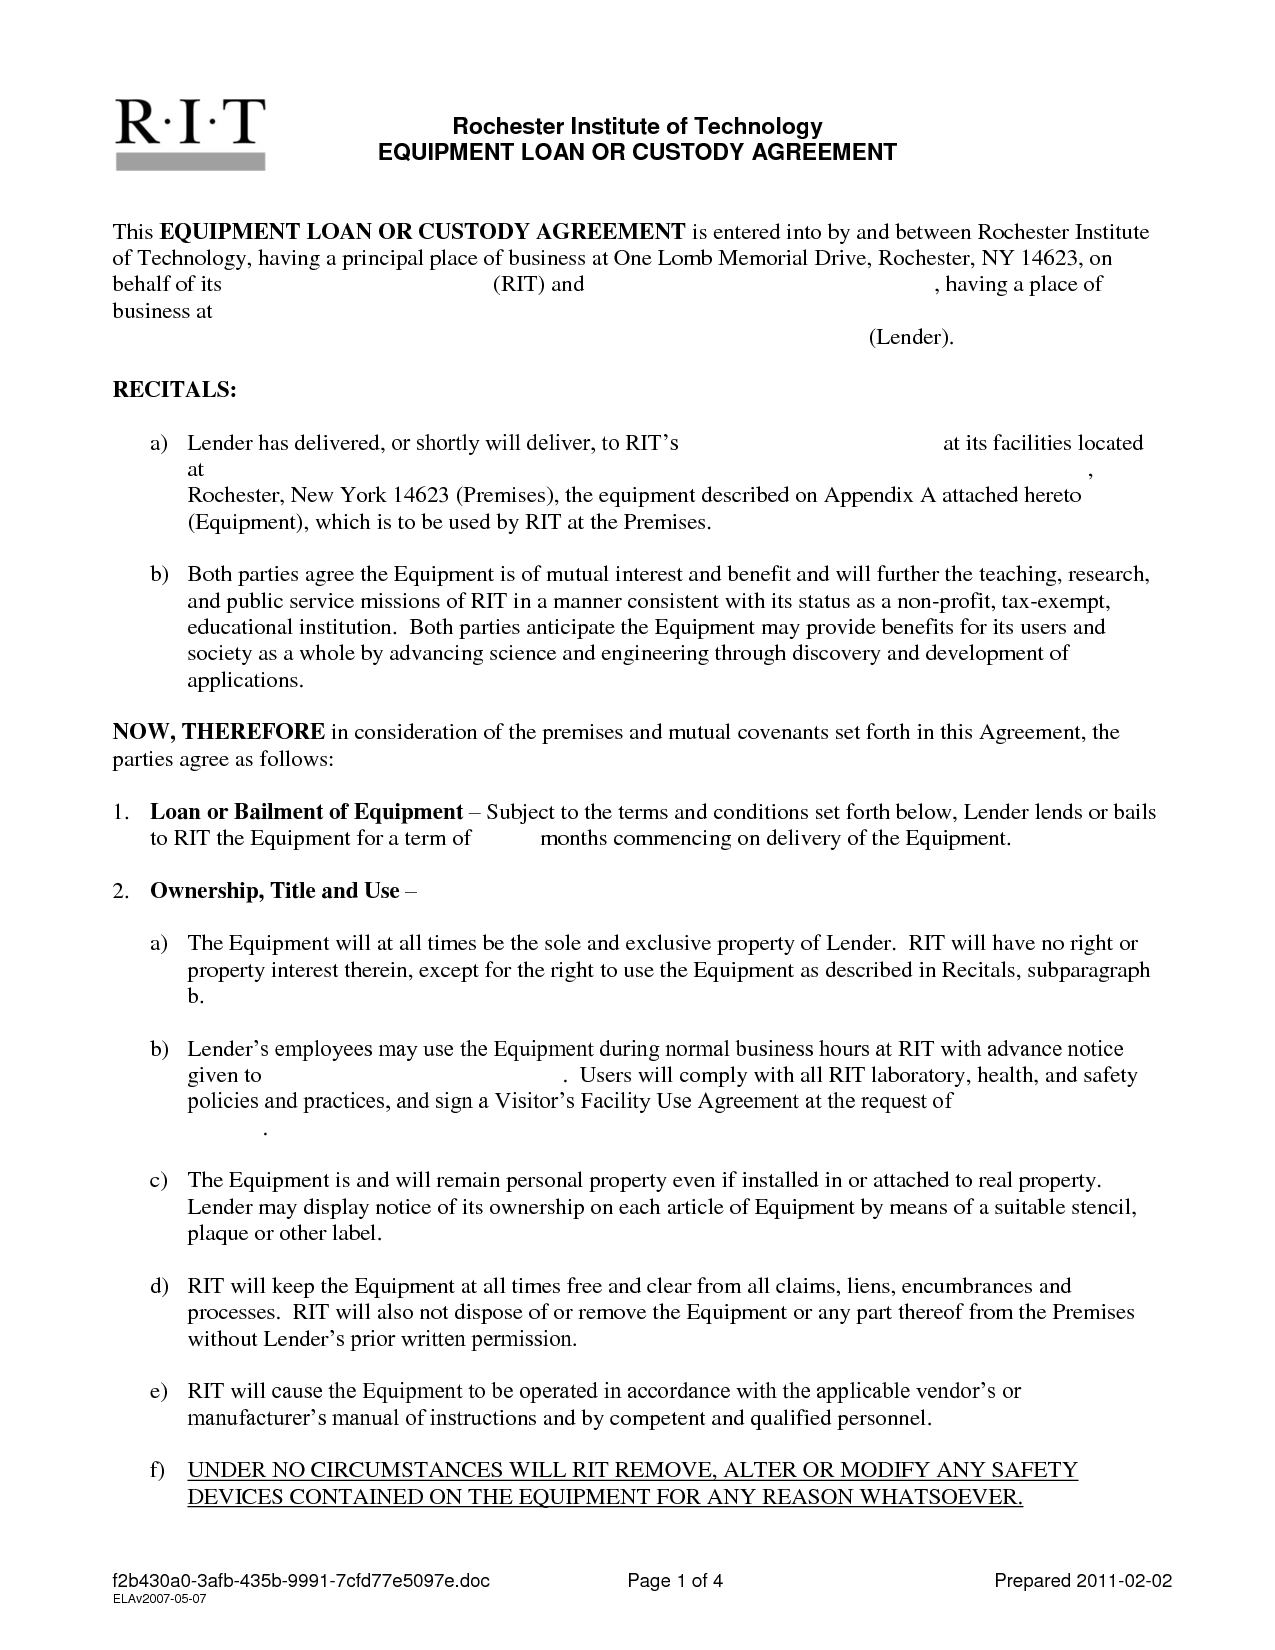 Free Loan Agreement Template Loan Contract Template 26 Examples In Word Pdf  Free, 5 Loan Agreement Templates To Write Perfect Agreements, Loan  Agreement ...  Private Loan Contract Template